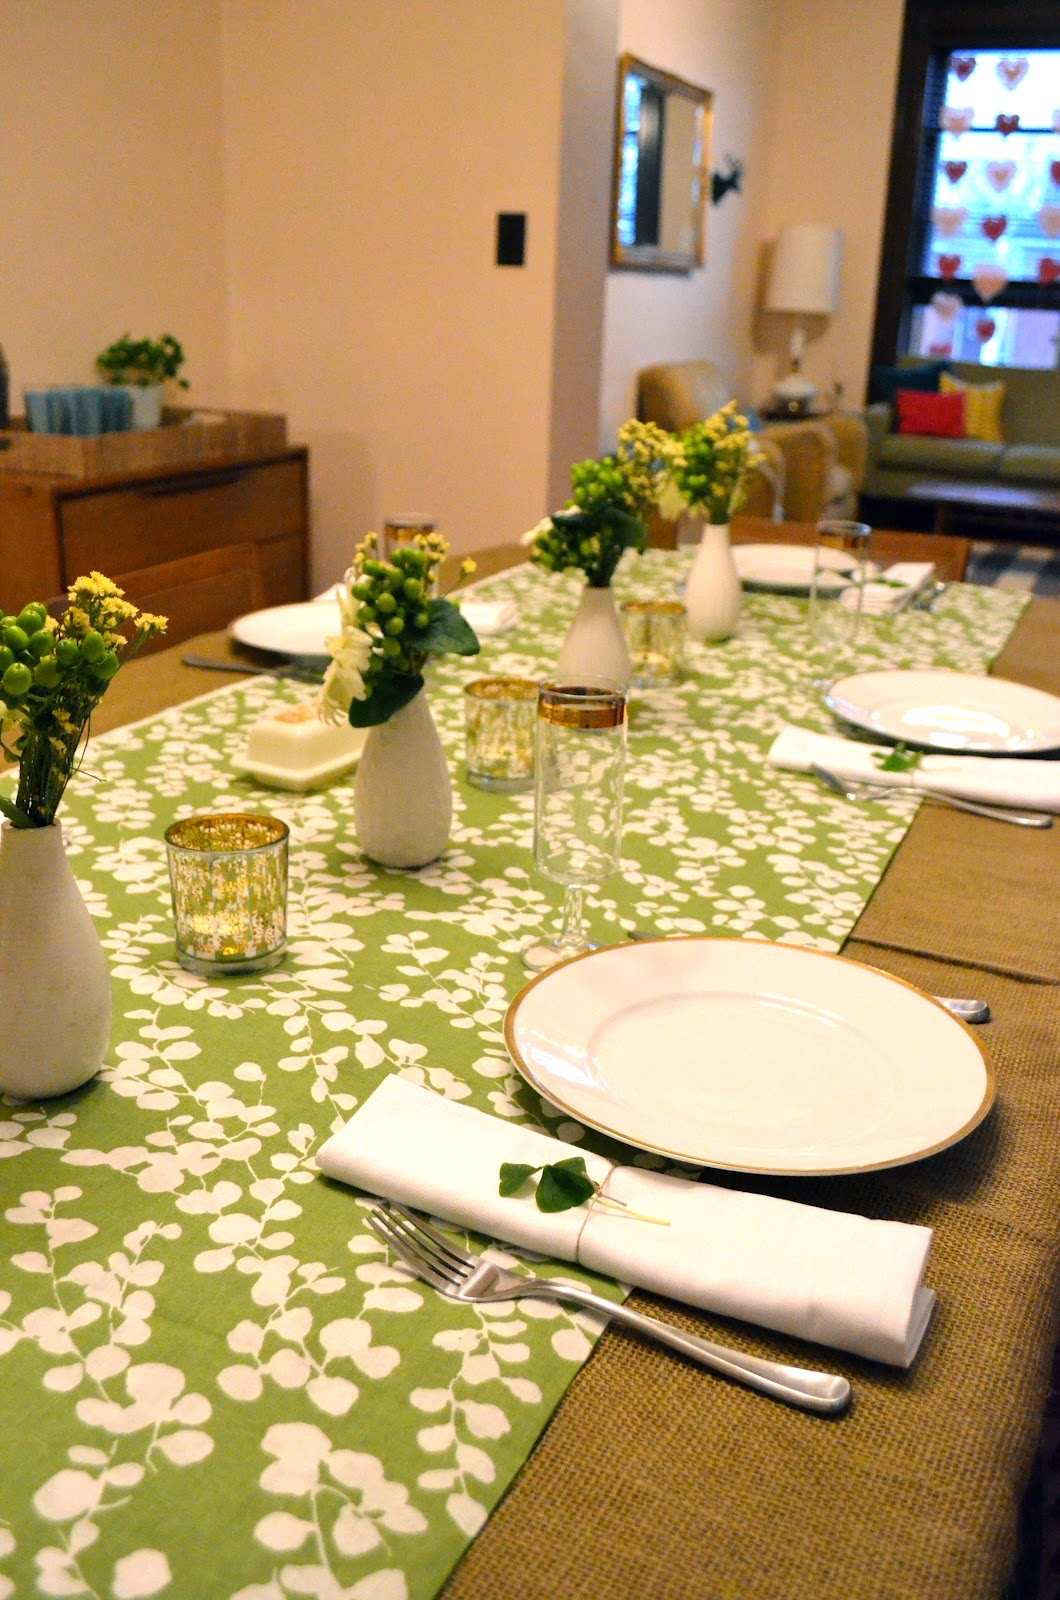 Irish Table Settings Parsimonia Secondhand With Style Style Spots Sunday Funday